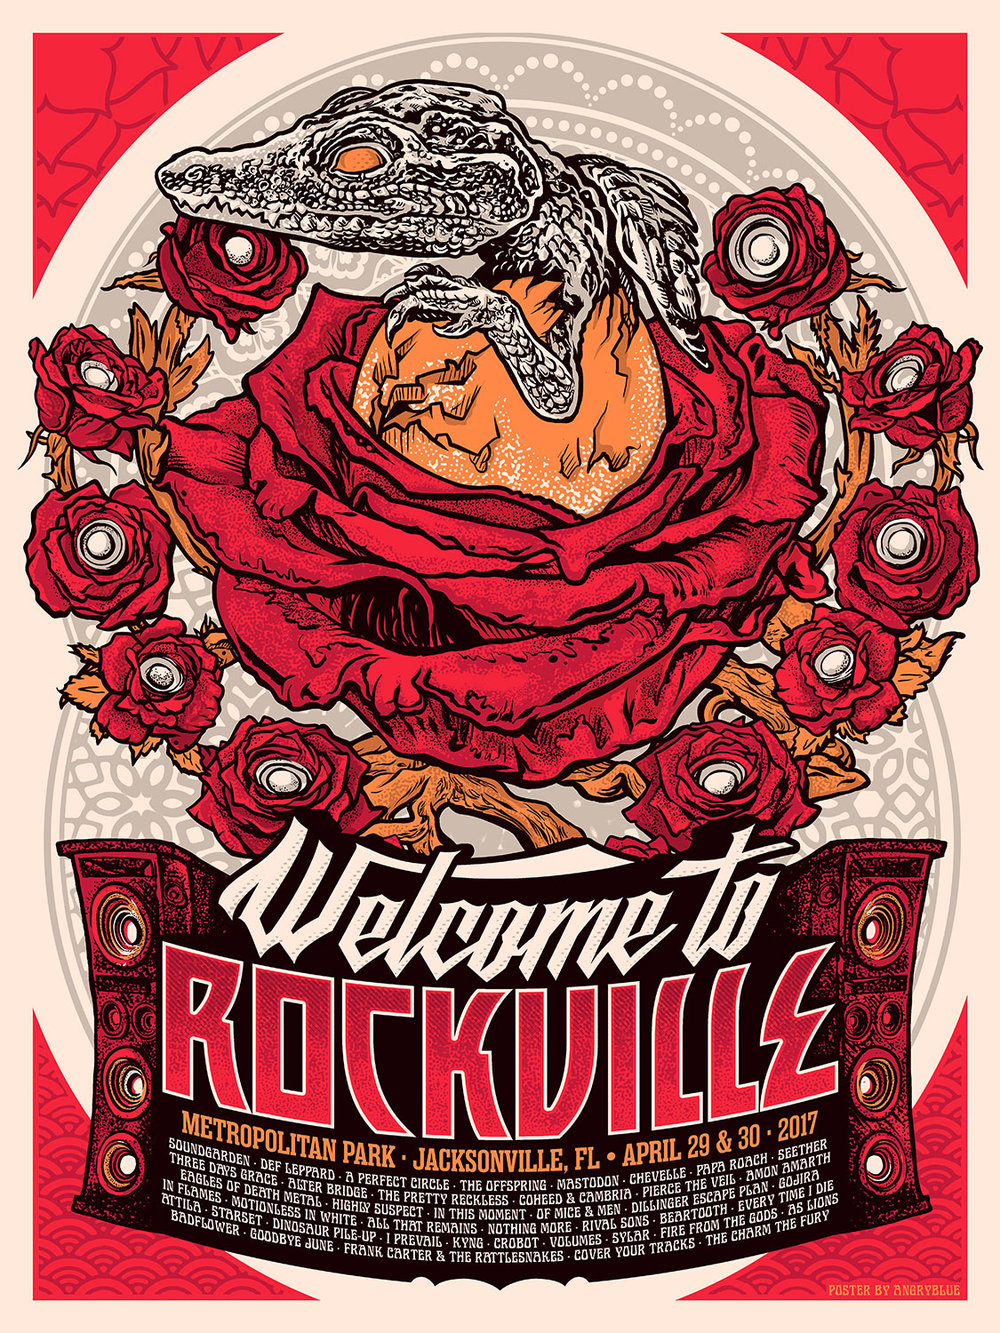 Welcome to Rockville 2017 by Angryblue